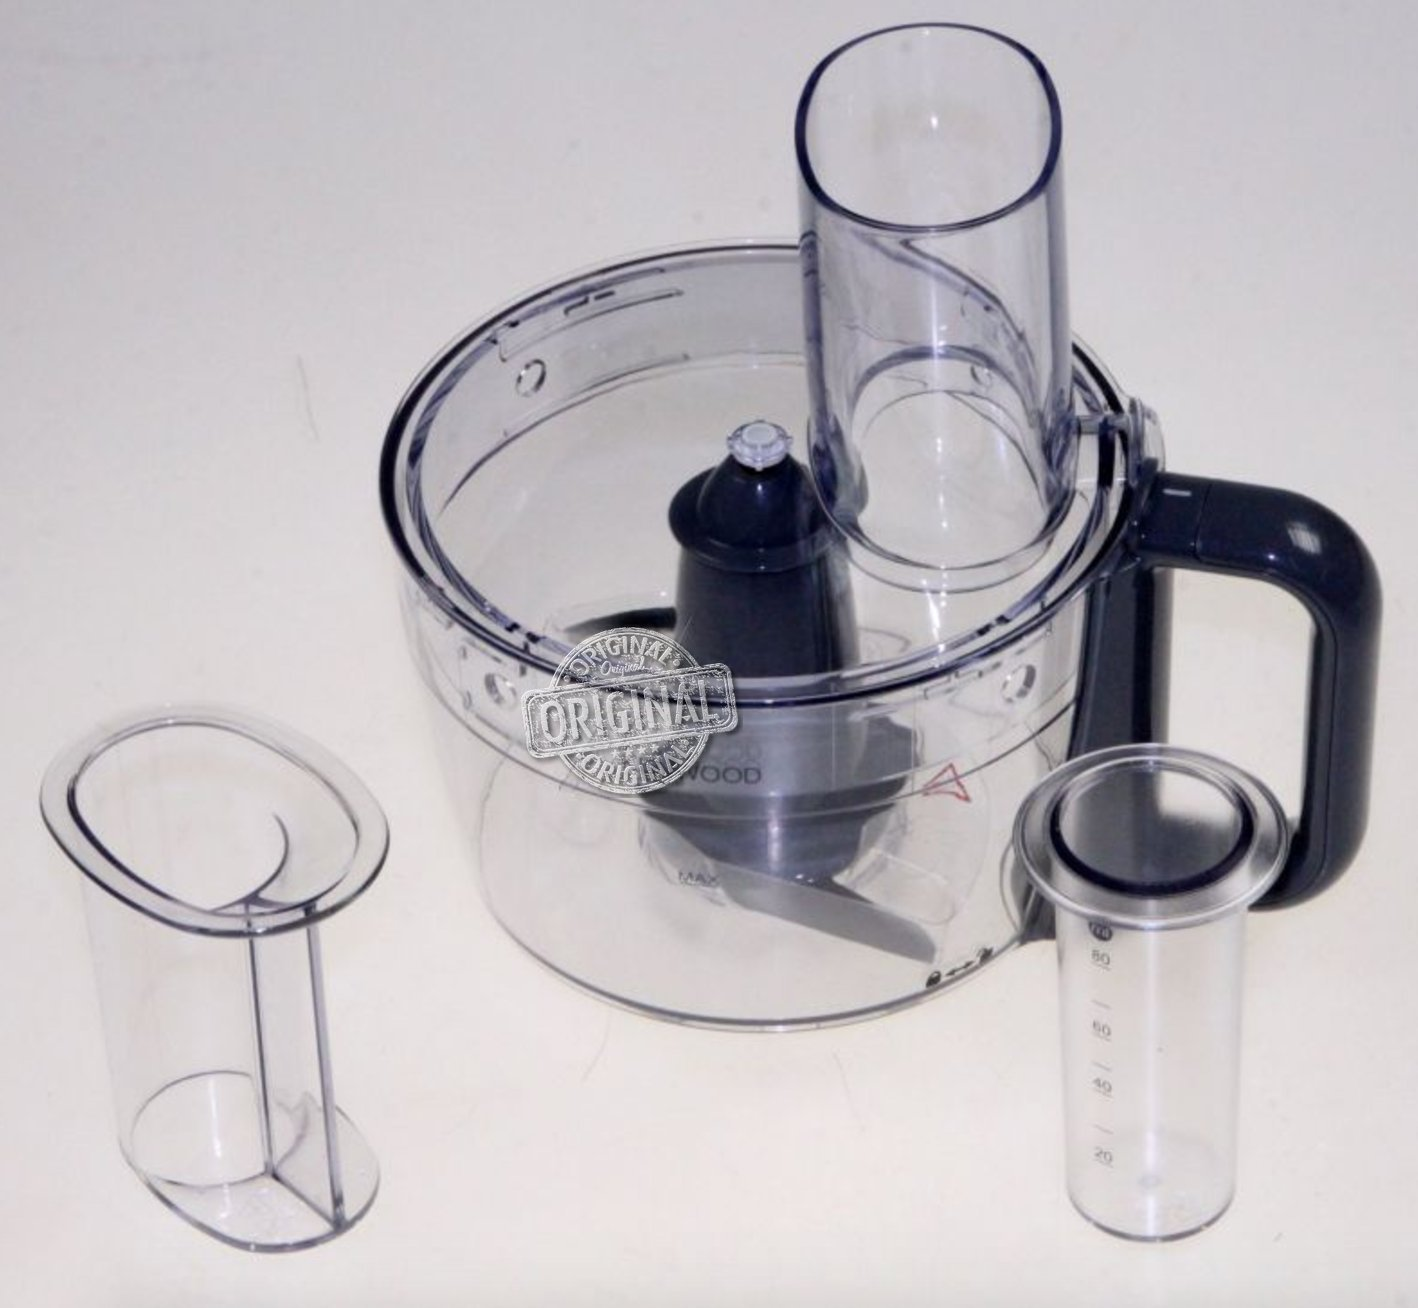 Food Processor Originale Kenwood per Kitchen Machine Prospero KM240, KM242, KM243, KM244, KM245 (Tazza, Coperchio, Premitore e Lama) CAREservice